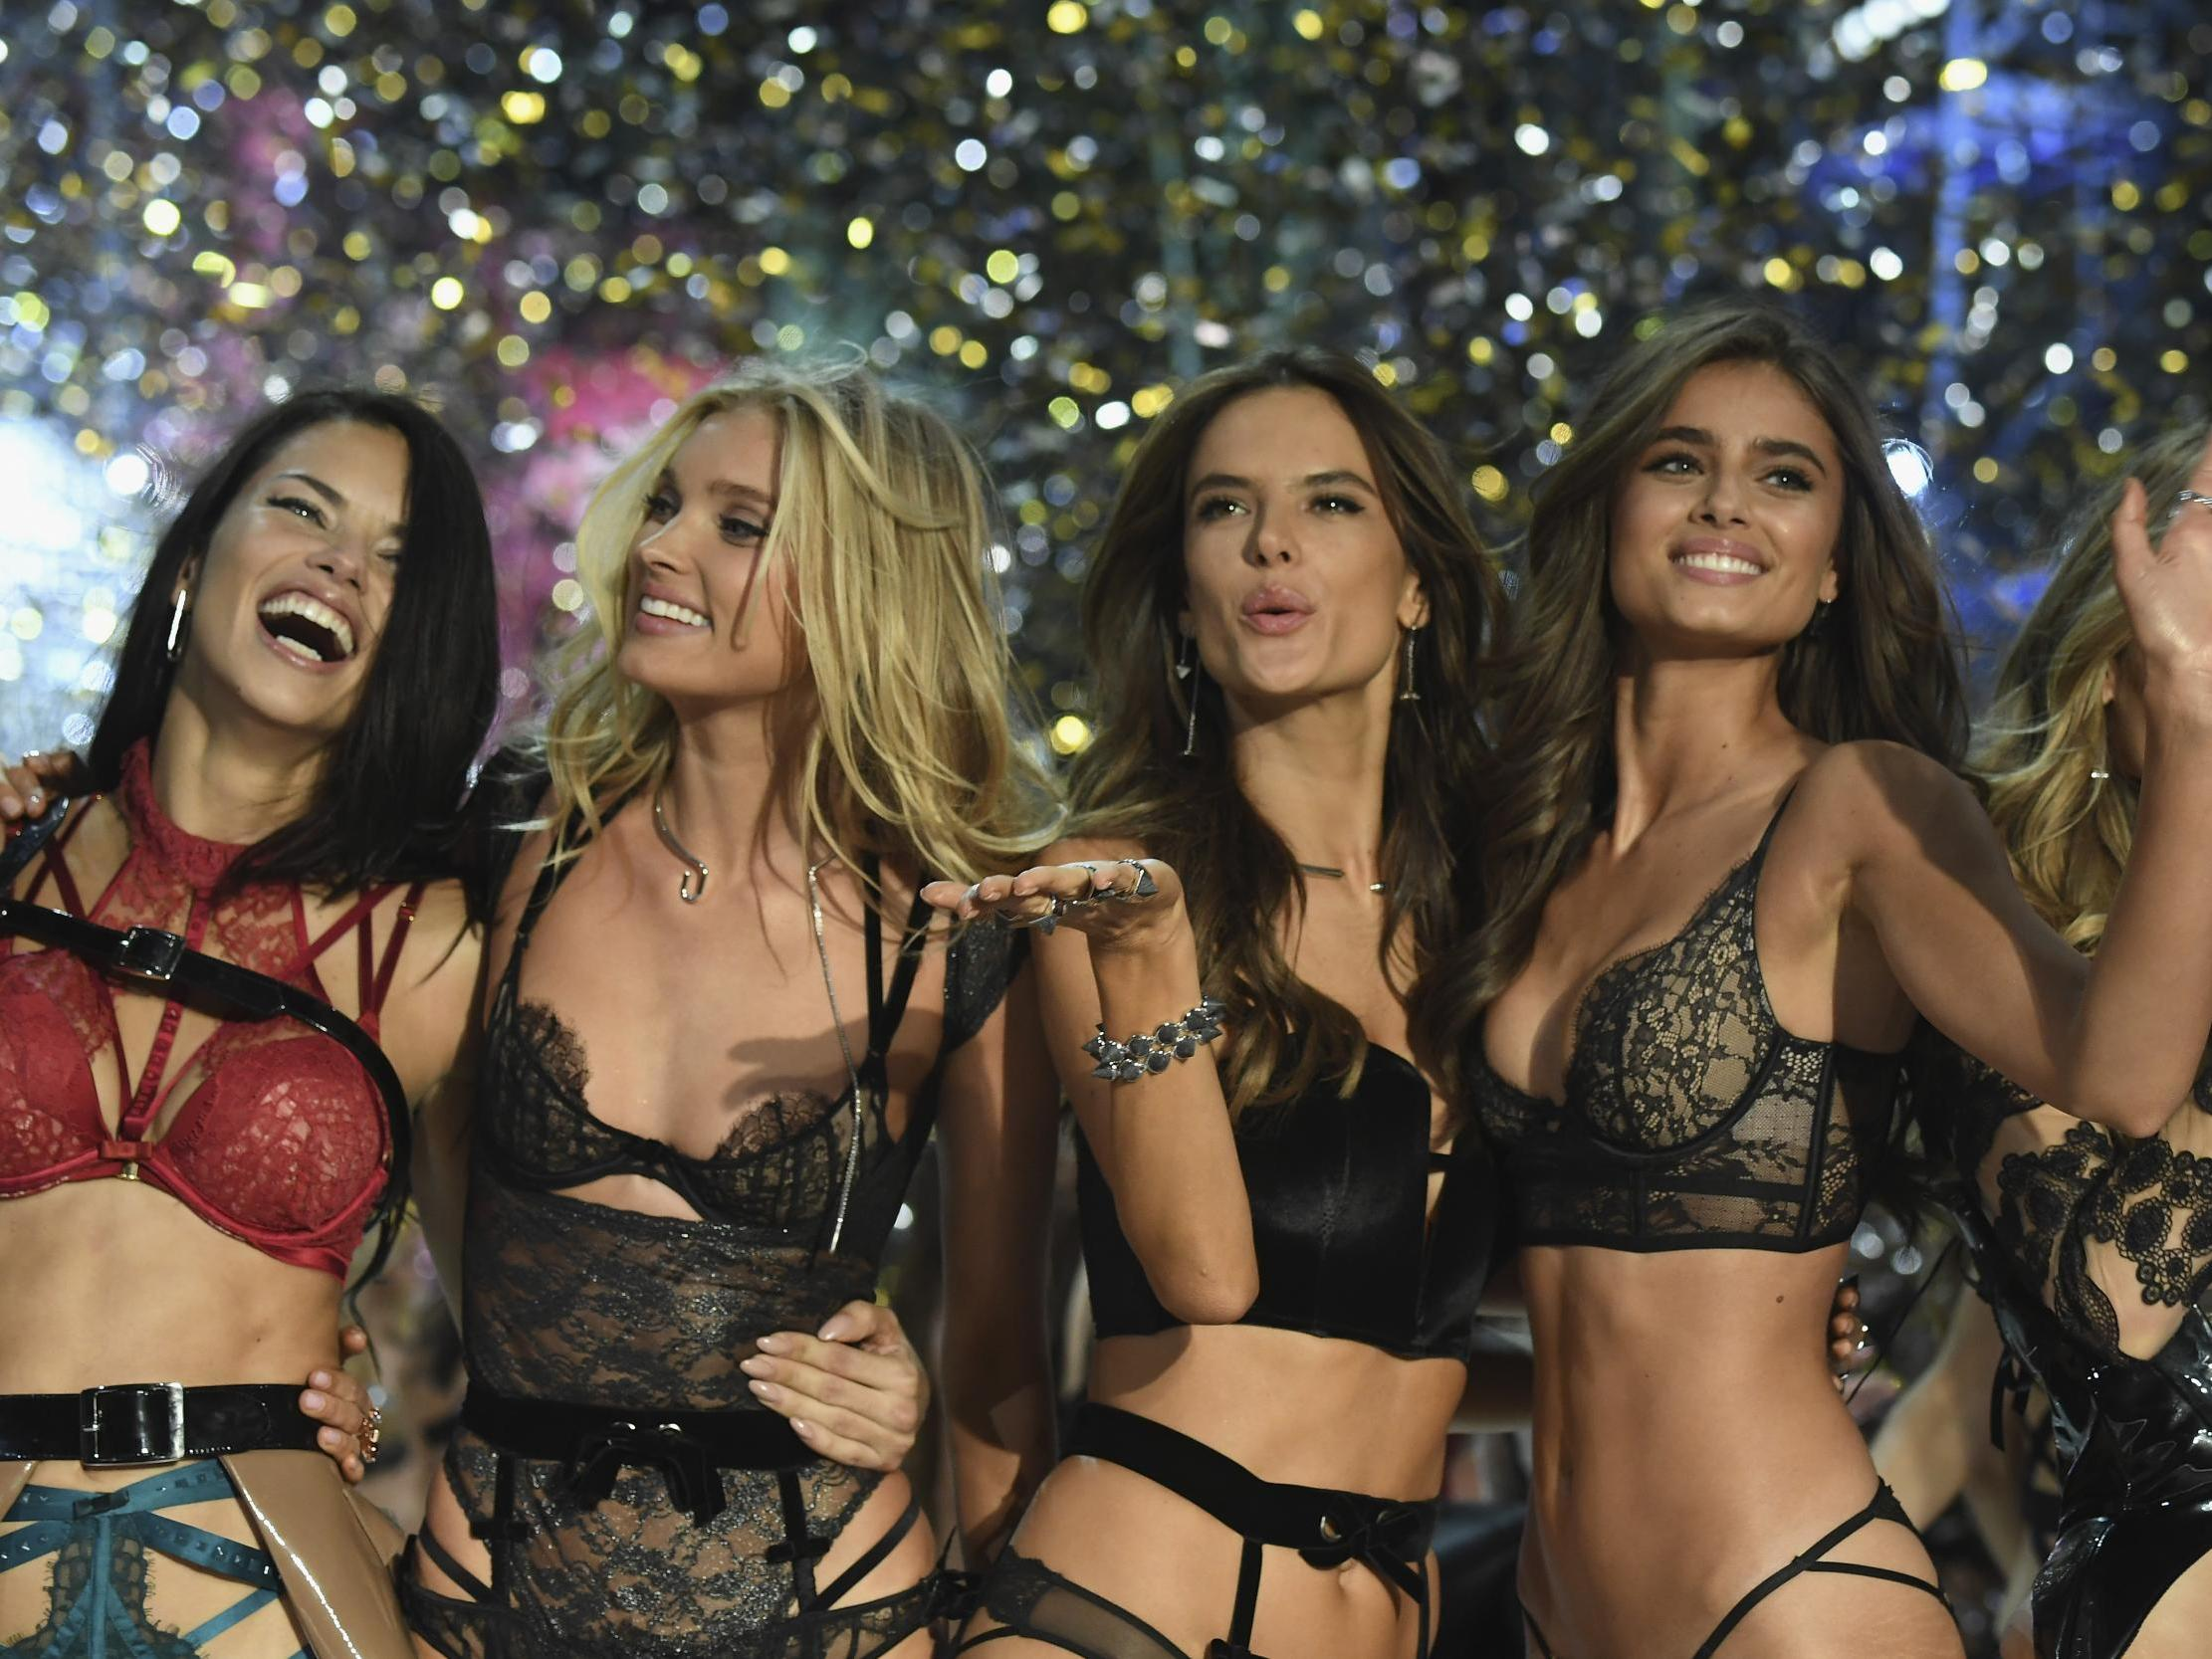 Victoria's Secret criticised for waste after dumping hundreds of bras